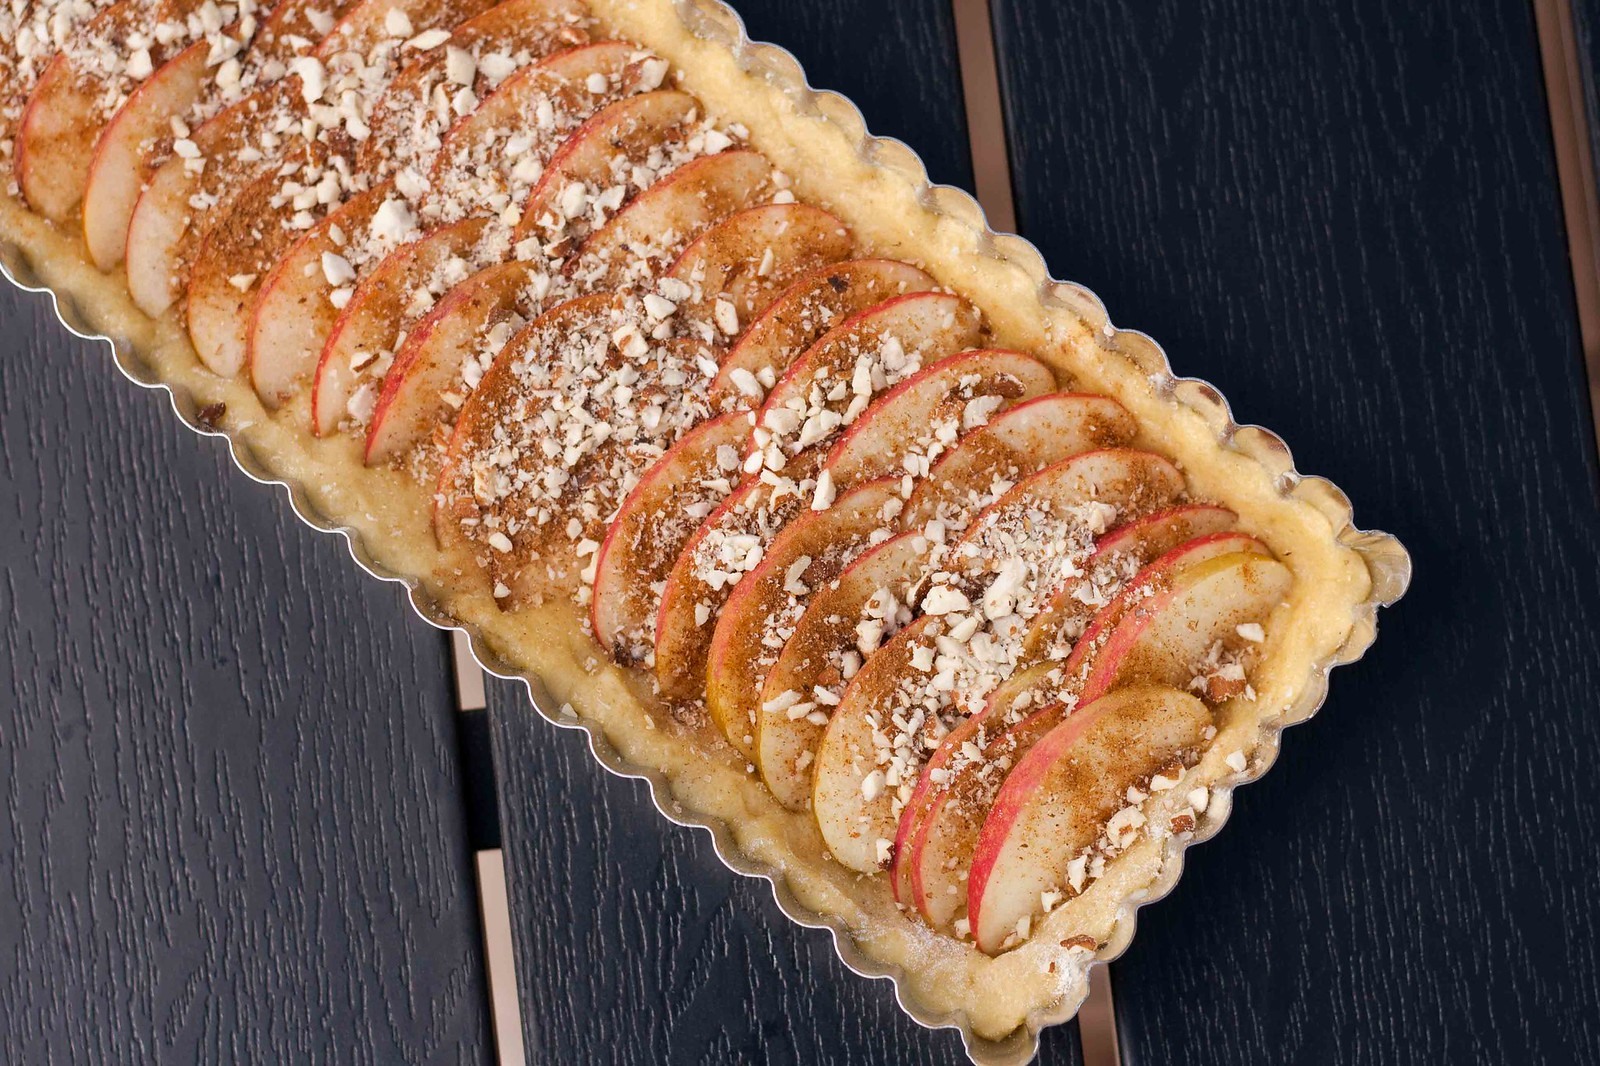 Recipe for Homemade Apple Pie with Marzipan, Almonds and Cinnamon